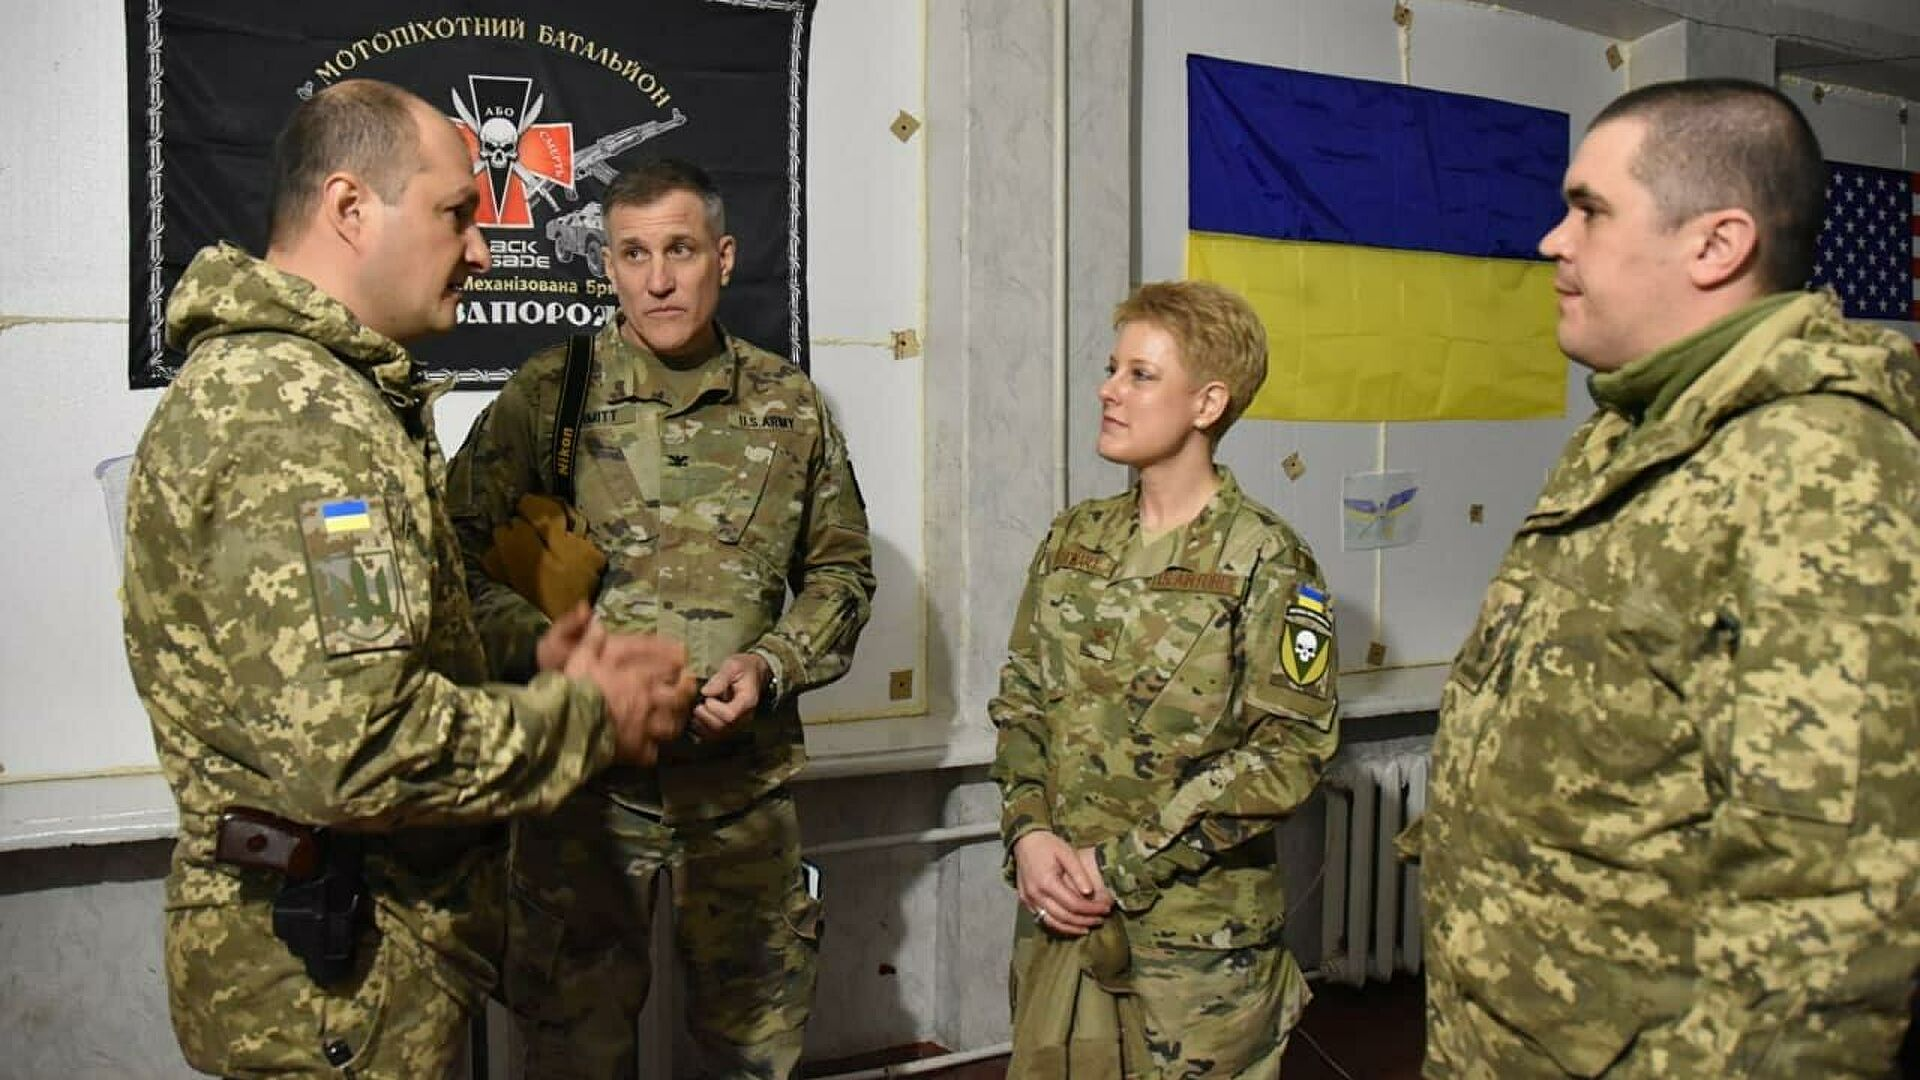 Death Or Ukraine: US Delegation In Donbass Frontlines Under Nazi Flags